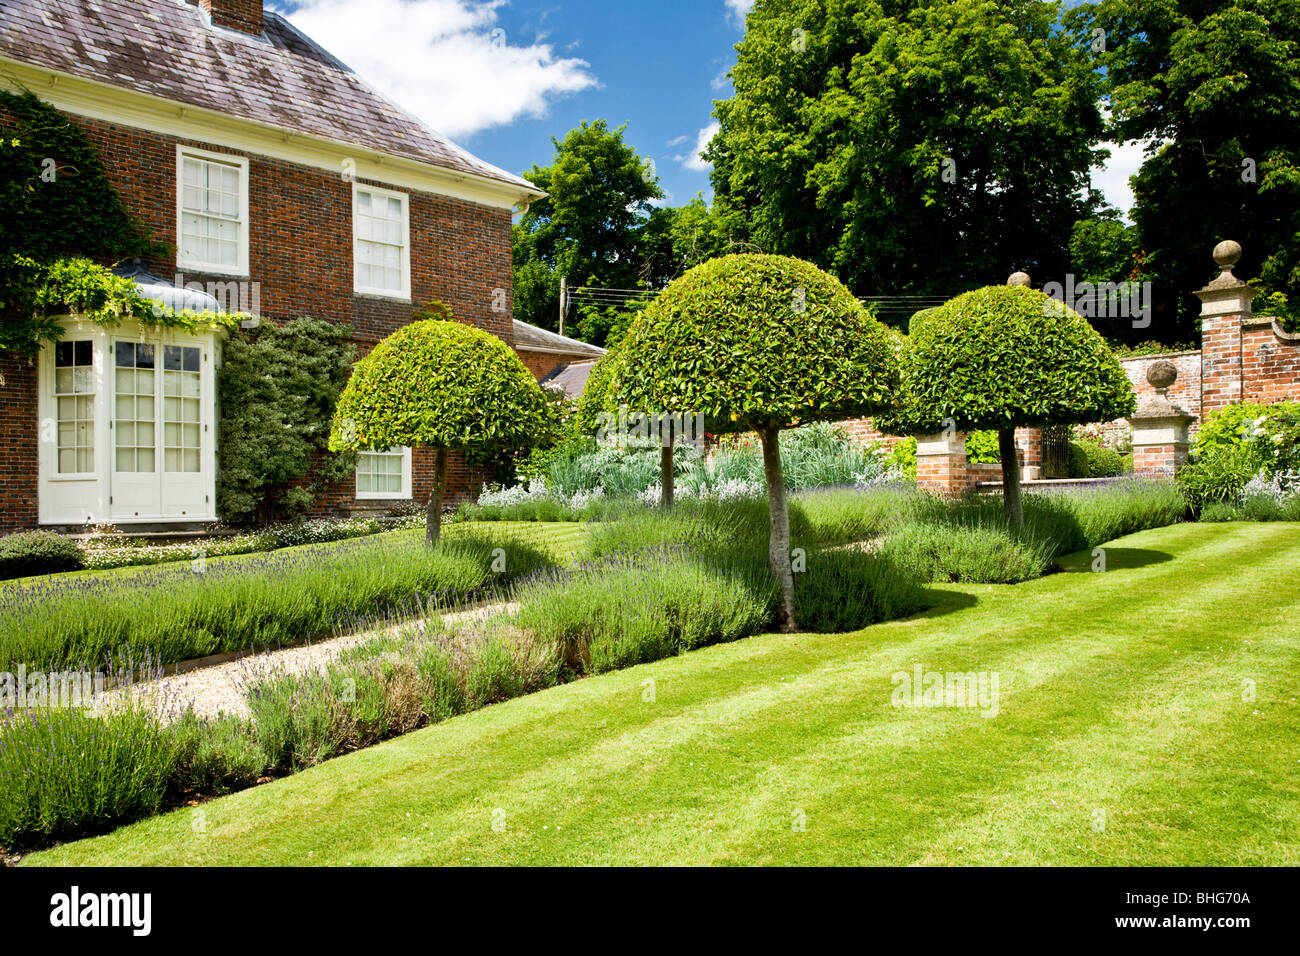 Topiary and a lavender edged path in front of a grand for Country house online